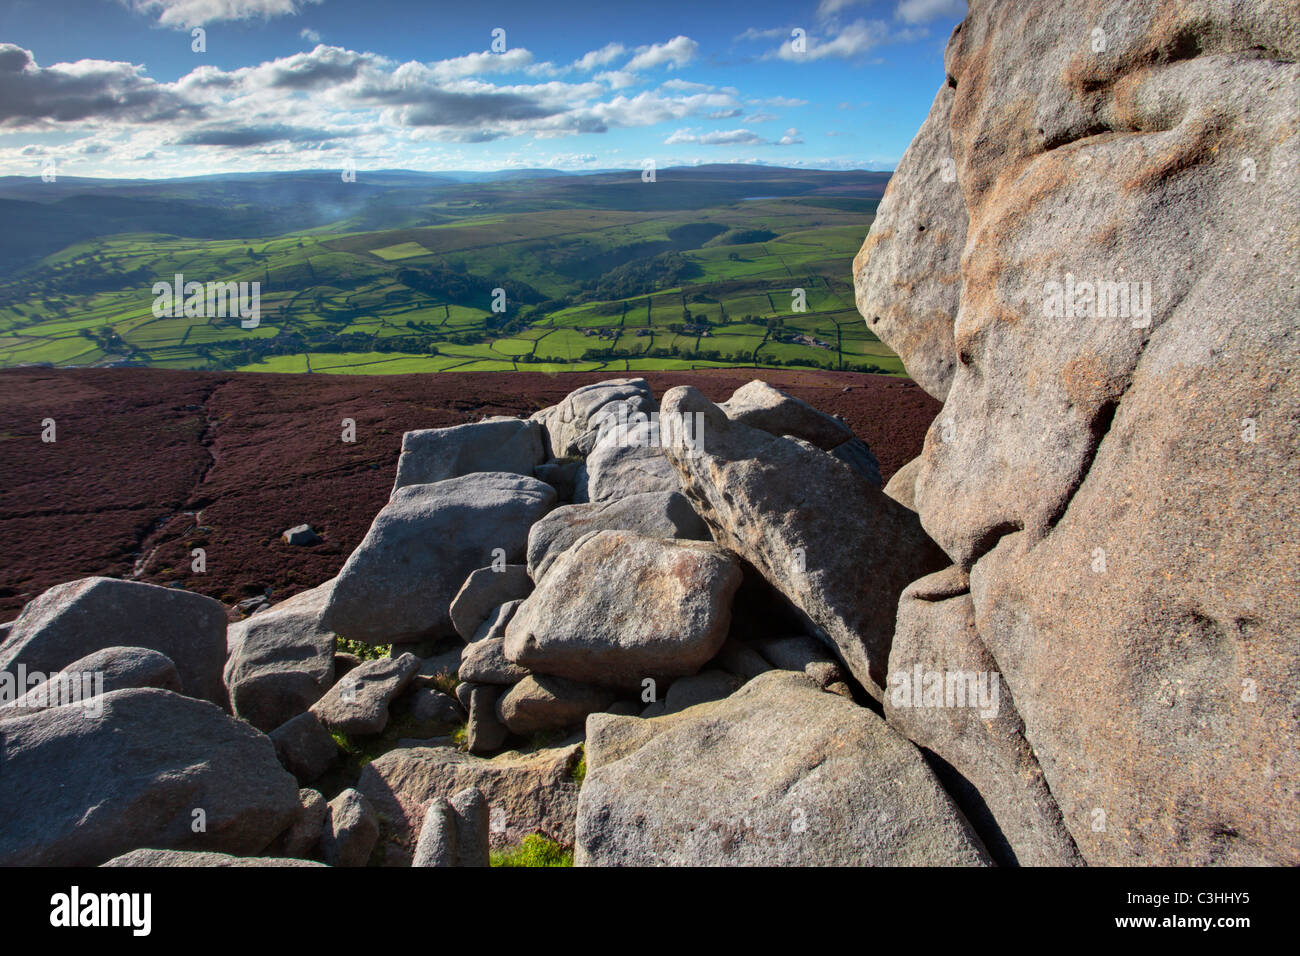 View of Wharfedale and Appletreewick from Simons Seat in Yorkshire, England - Stock Image